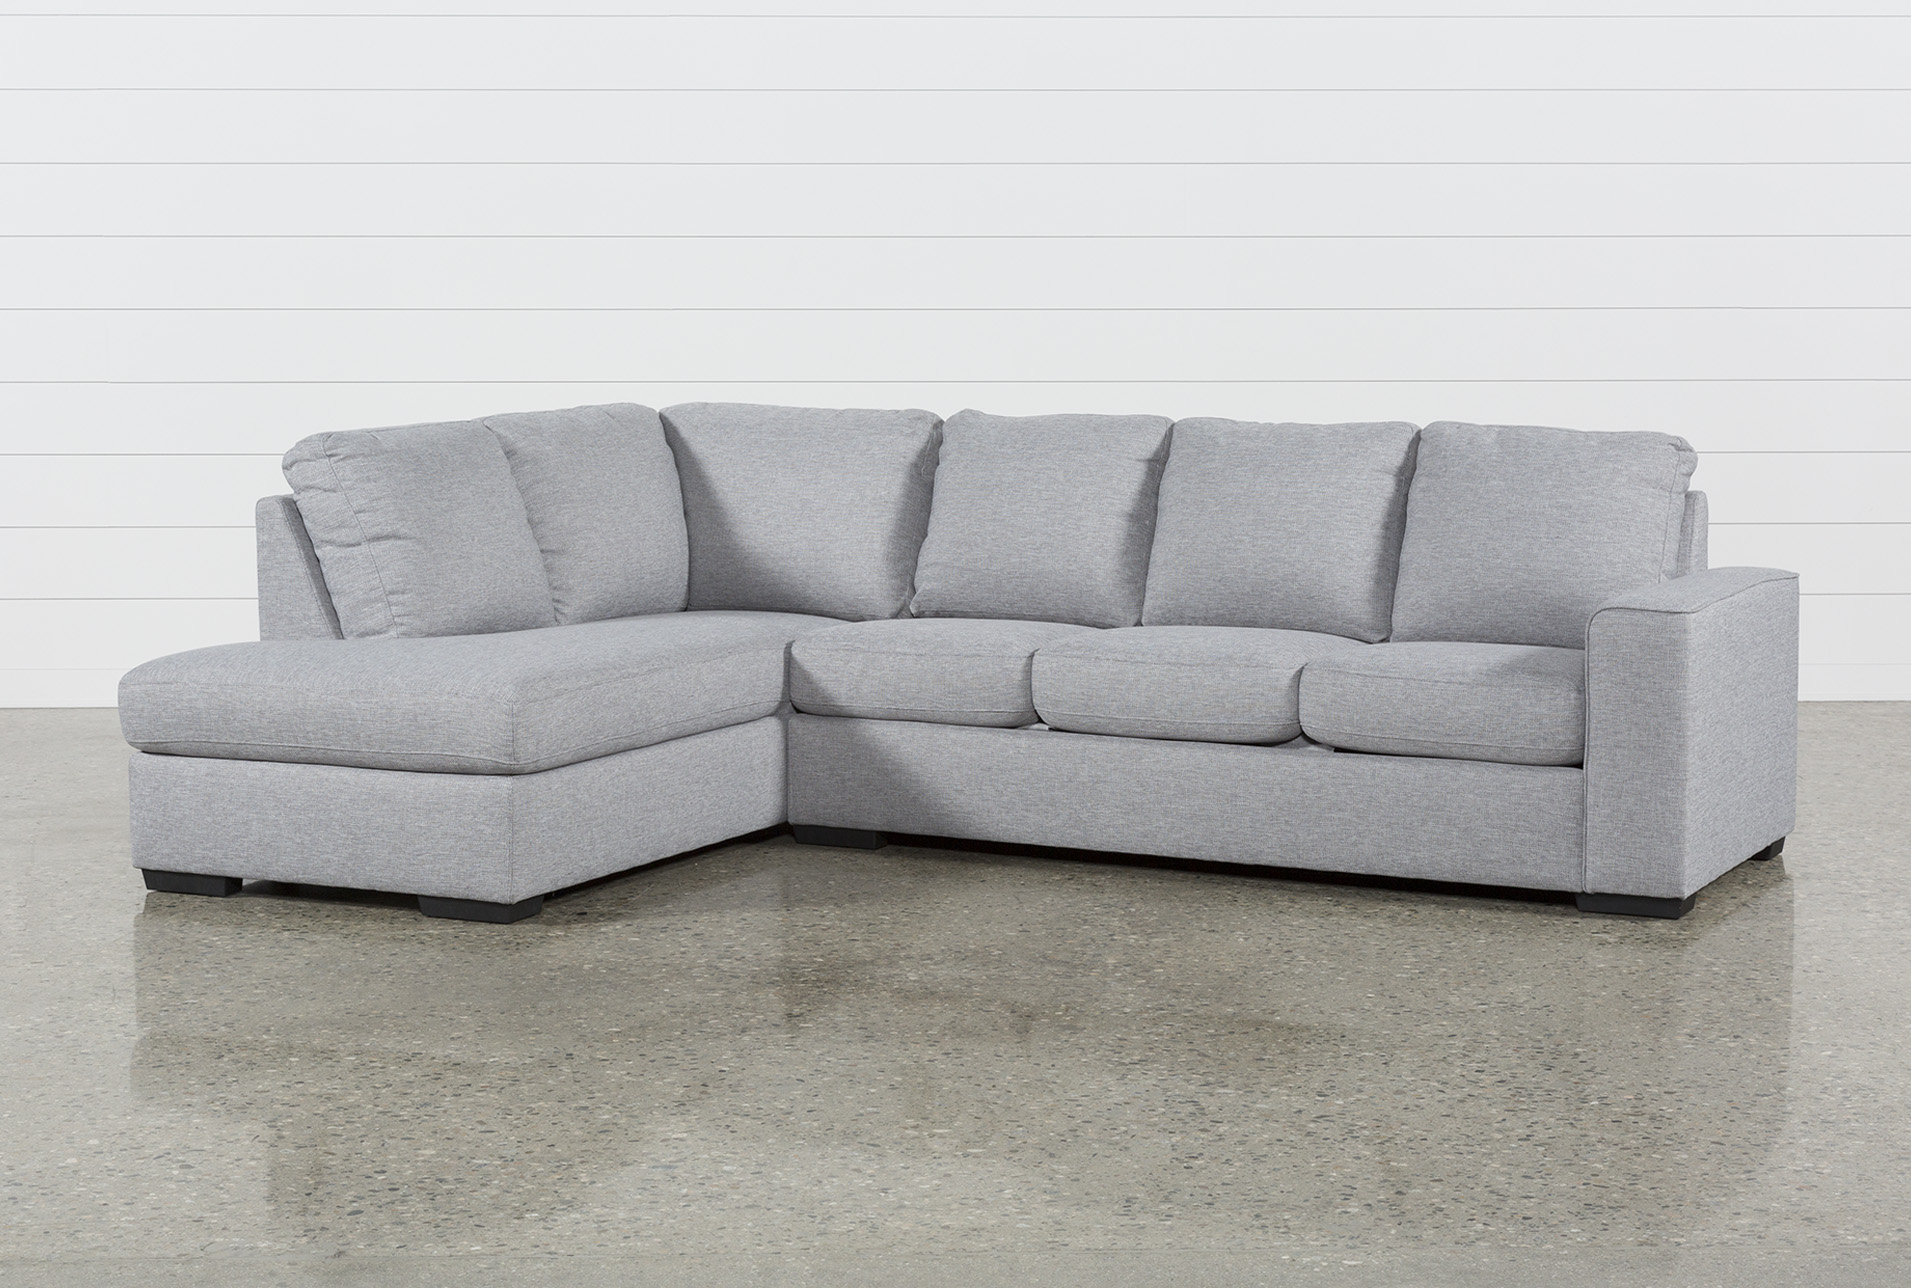 Superbe Lucy Grey 2 Piece Sectional W/Laf Chaise